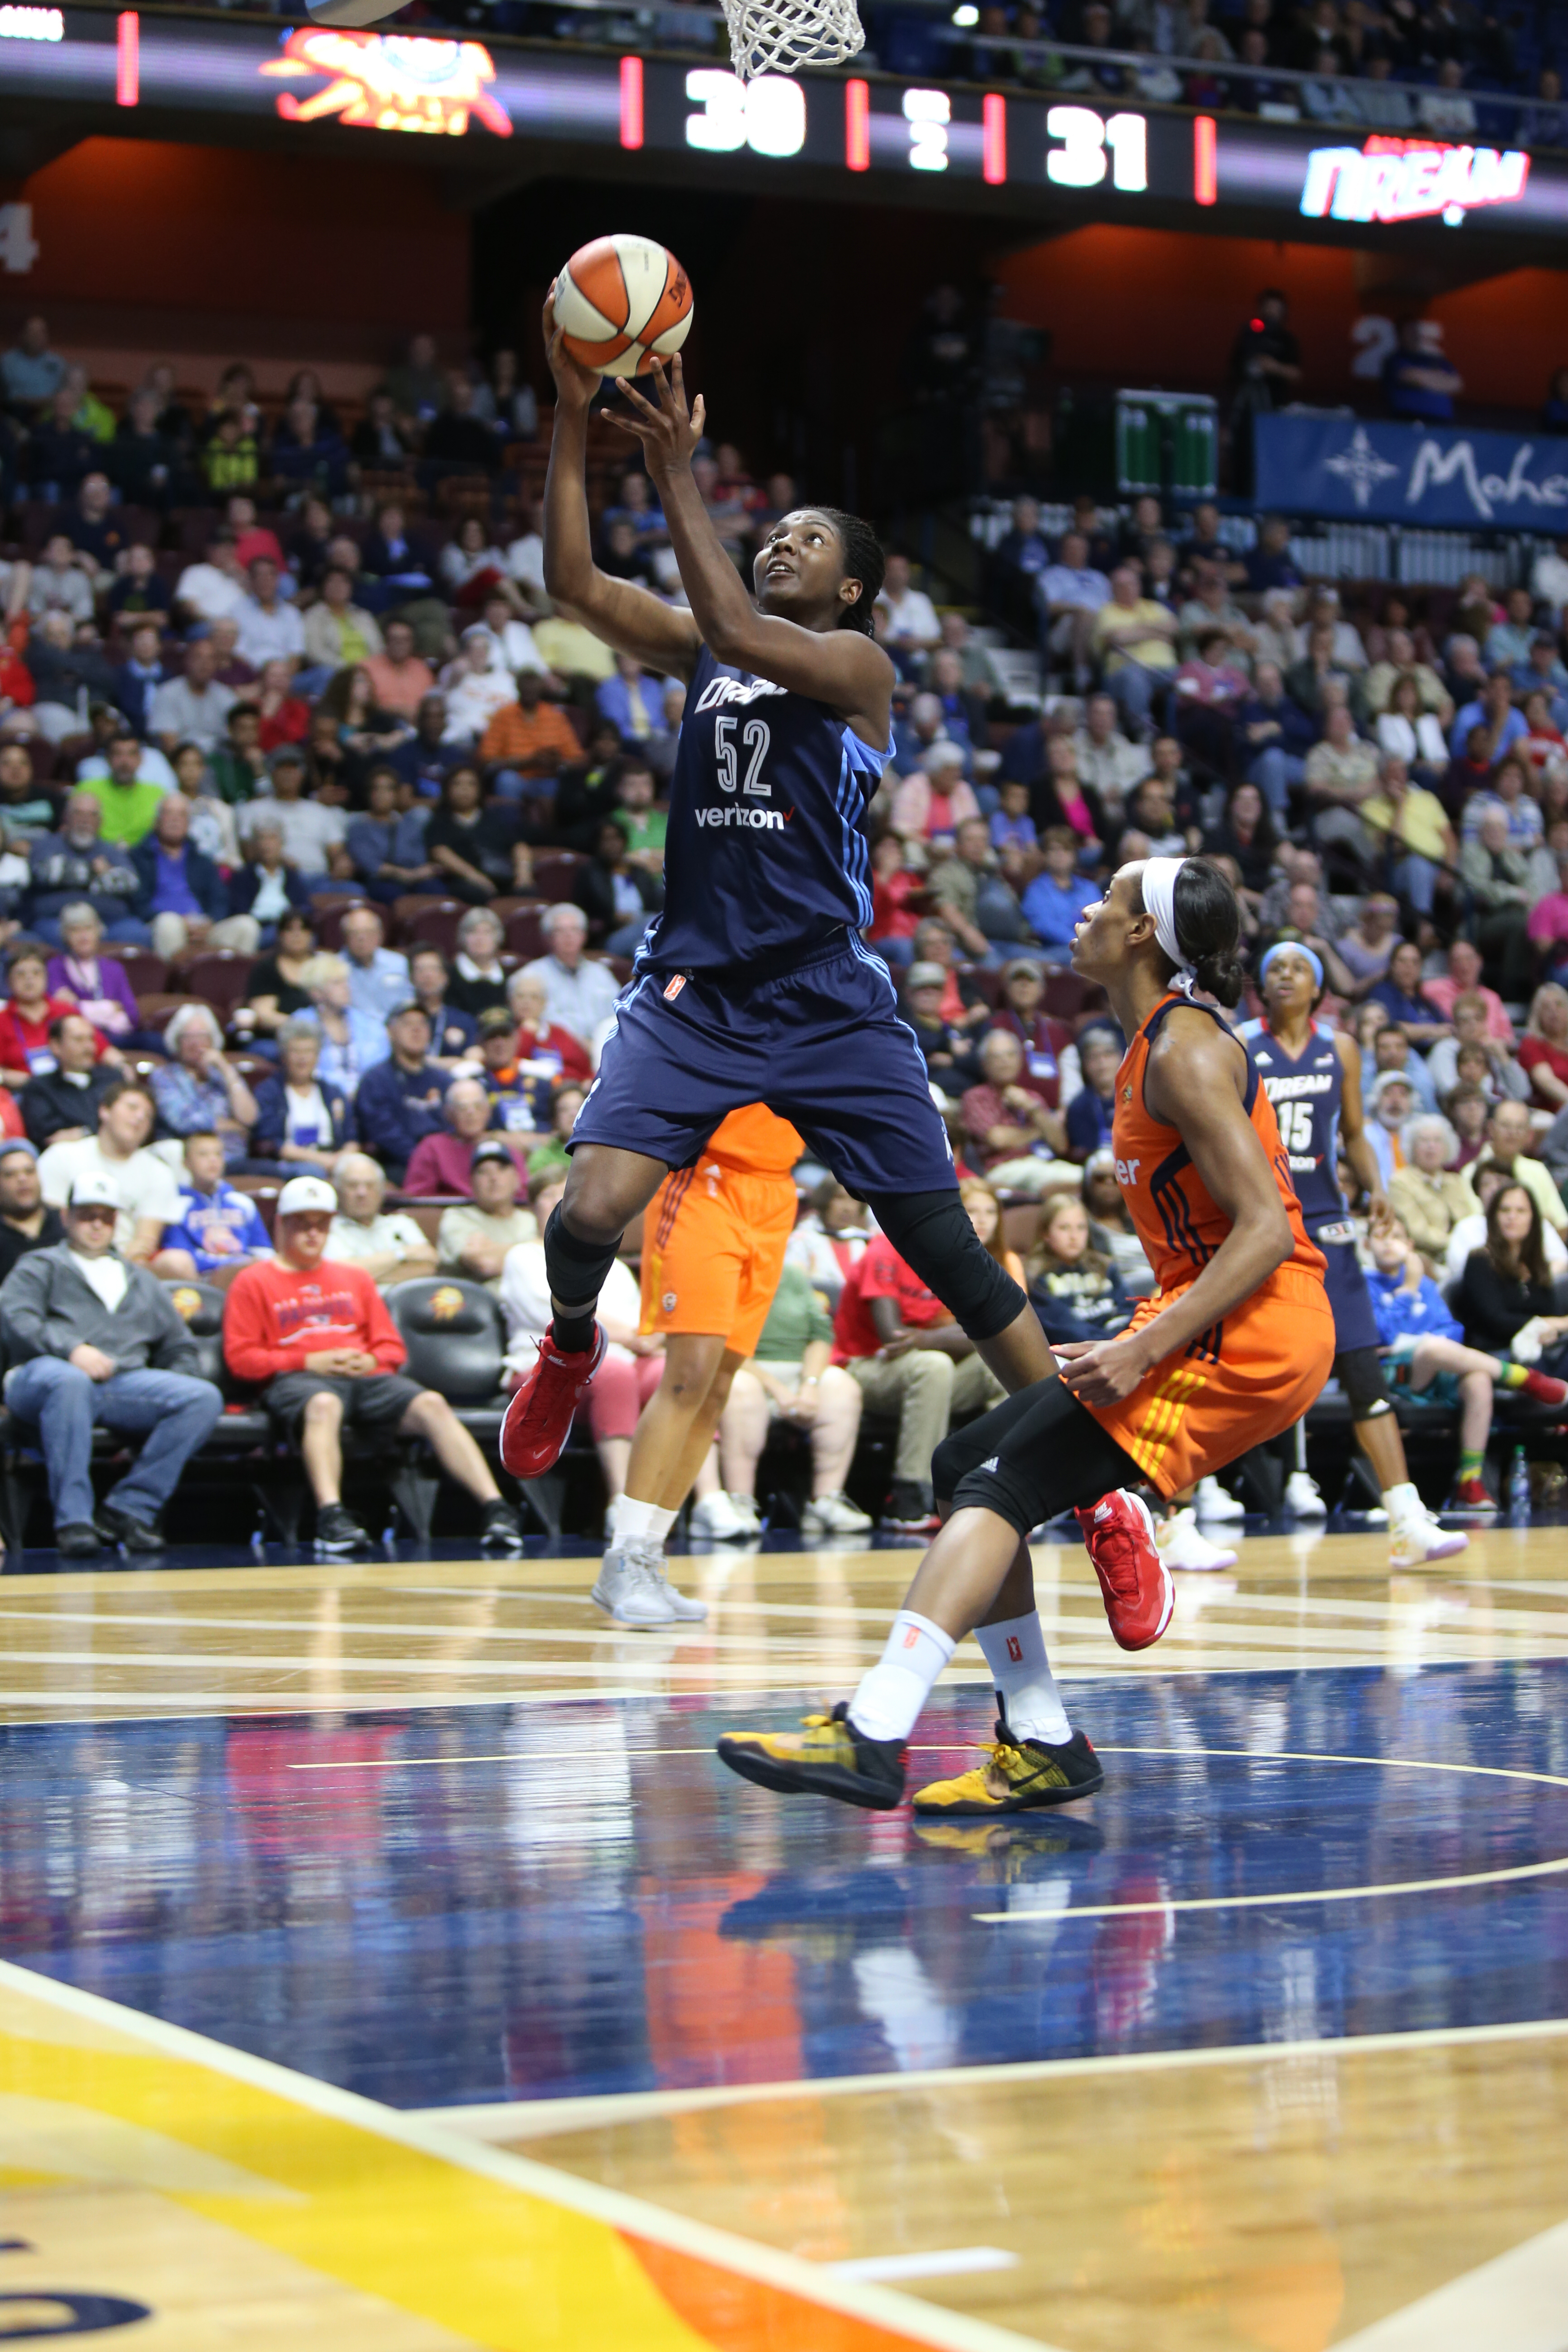 UNCASVILLE, CT - JUNE 3: Elizabeth Williams #52 of the Atlanta Dream shoots the ball against the Connecticut Sun on June 3, 2016 at Mohegan Sun Arena in Uncasville, CT. NOTE TO USER: User expressly acknowledges and agrees that, by downloading and or using this Photograph, user is consenting to the terms and conditions of the Getty Images License Agreement. Mandatory Copyright Notice: Copyright 2016 NBAE (Photo by Chris Marion/NBAE via Getty Images)